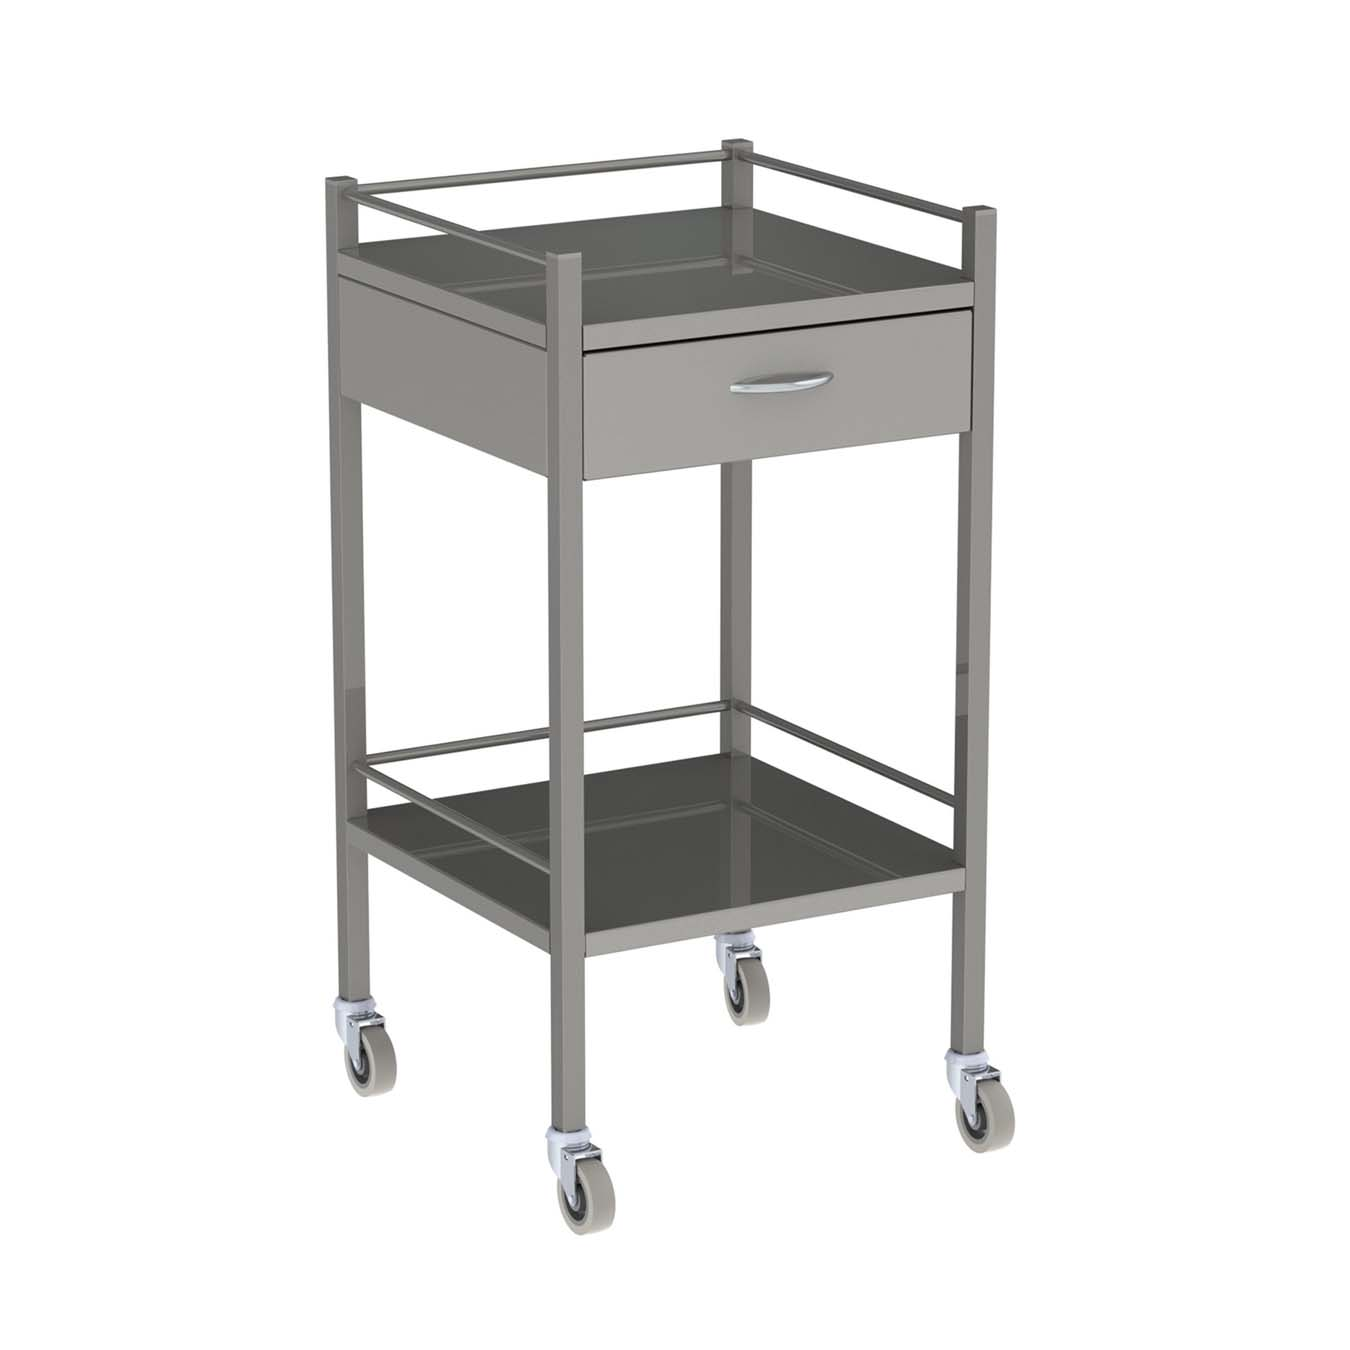 AX054_1_Dressing-Trolley-1-Drawer-With-Rail-Stainless-Steel_490x490x900mm_1